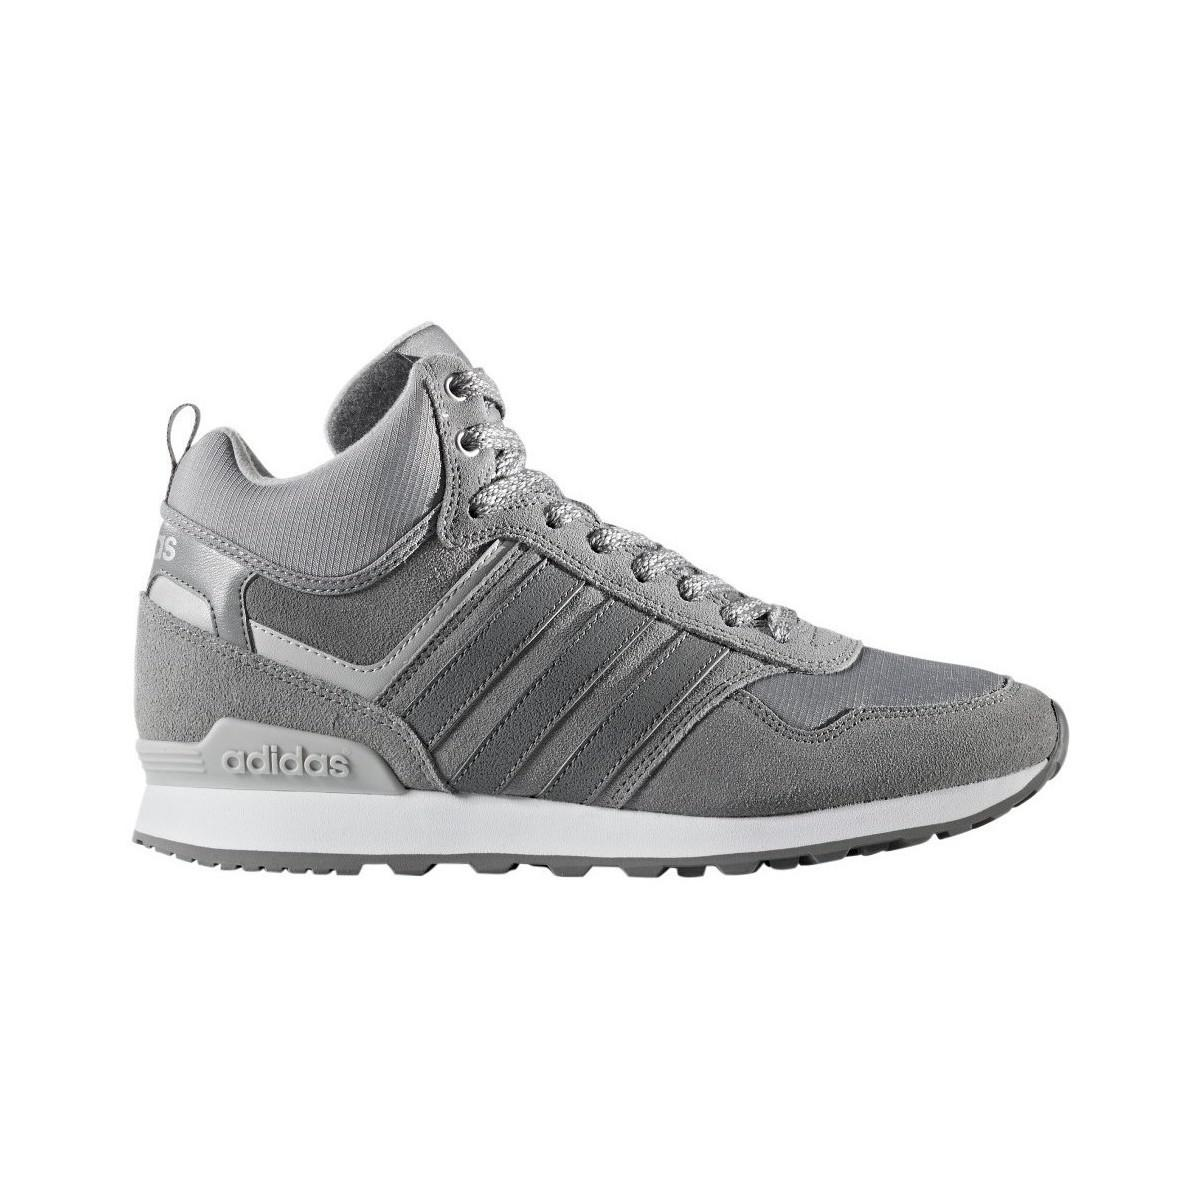 adidas 10xt Wtr Mid Men's Shoes (trainers) In Grey in Grey for Men